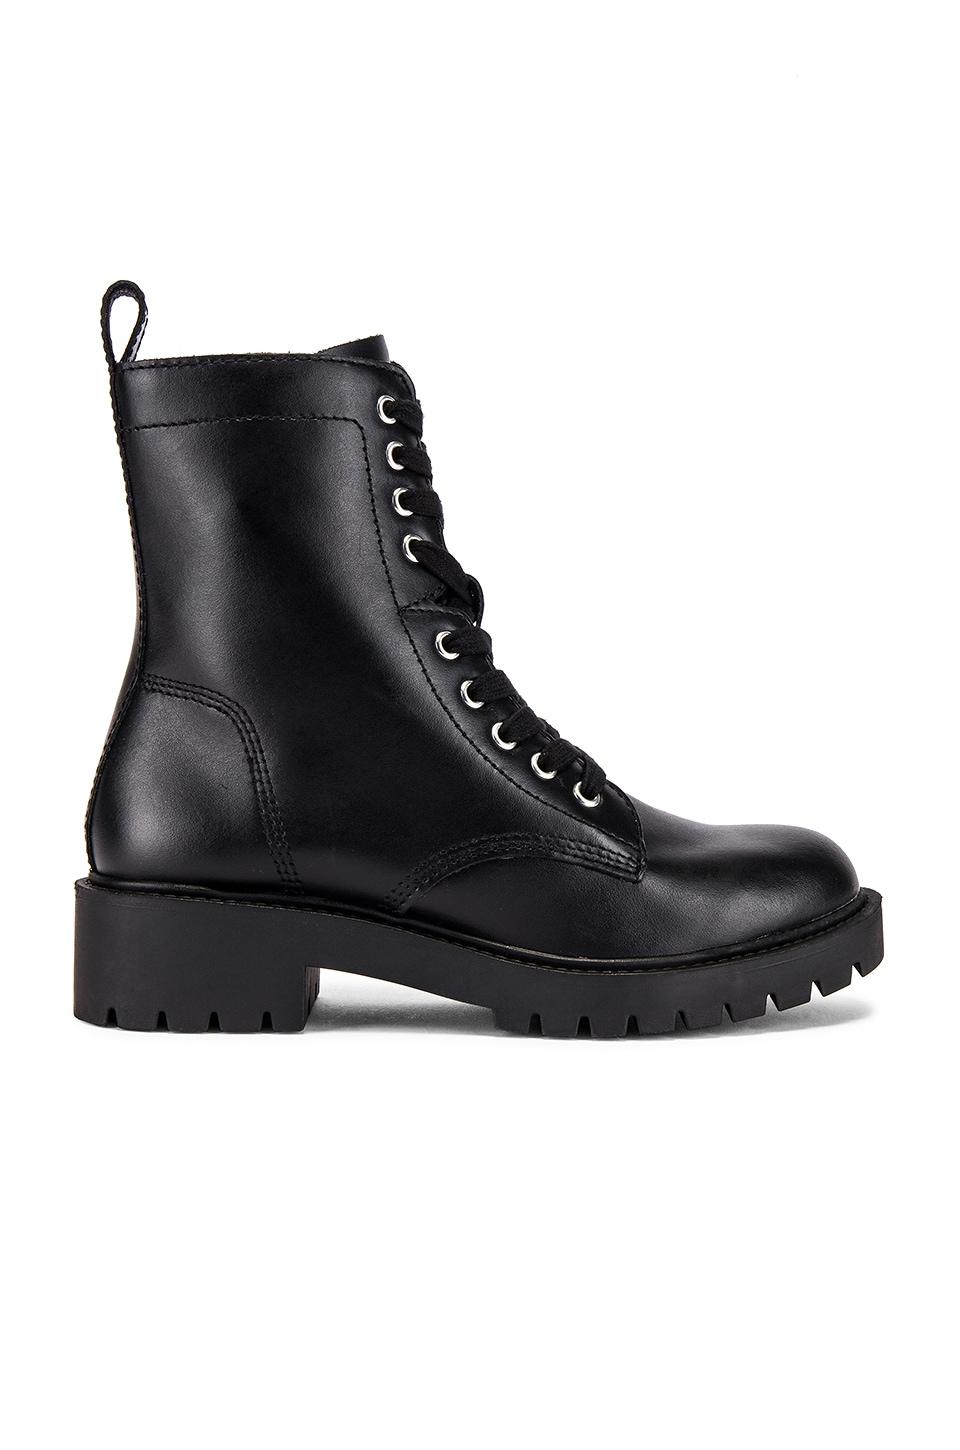 Steve Madden Guided Boot in Black Leather